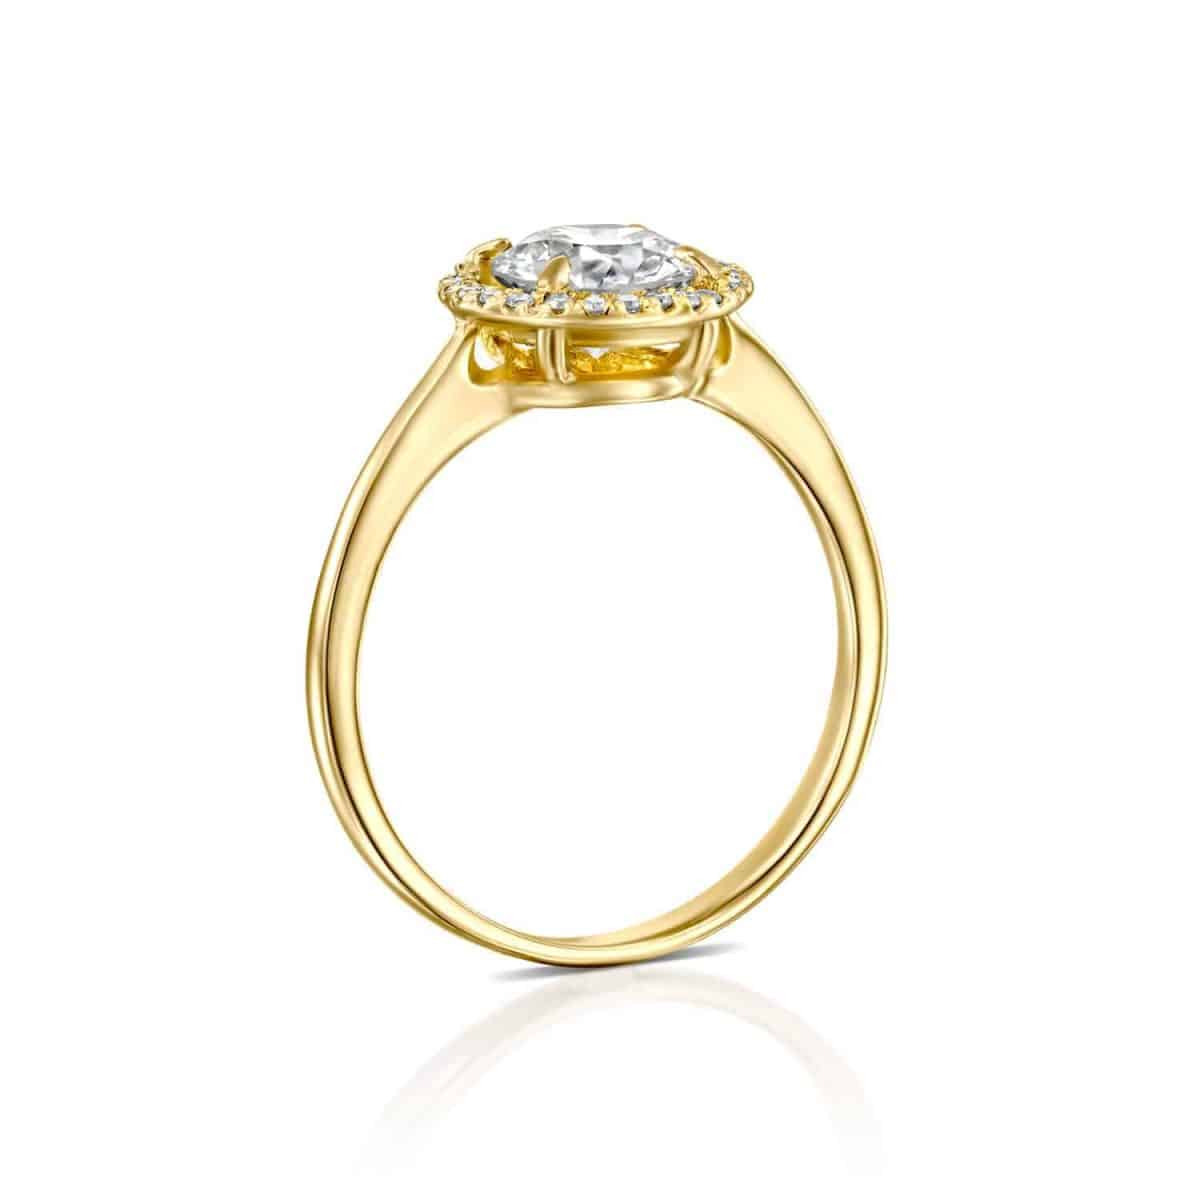 Lisa - Yellow Gold Lab Grown Diamond Engagement Ring 1.31ct. - standing